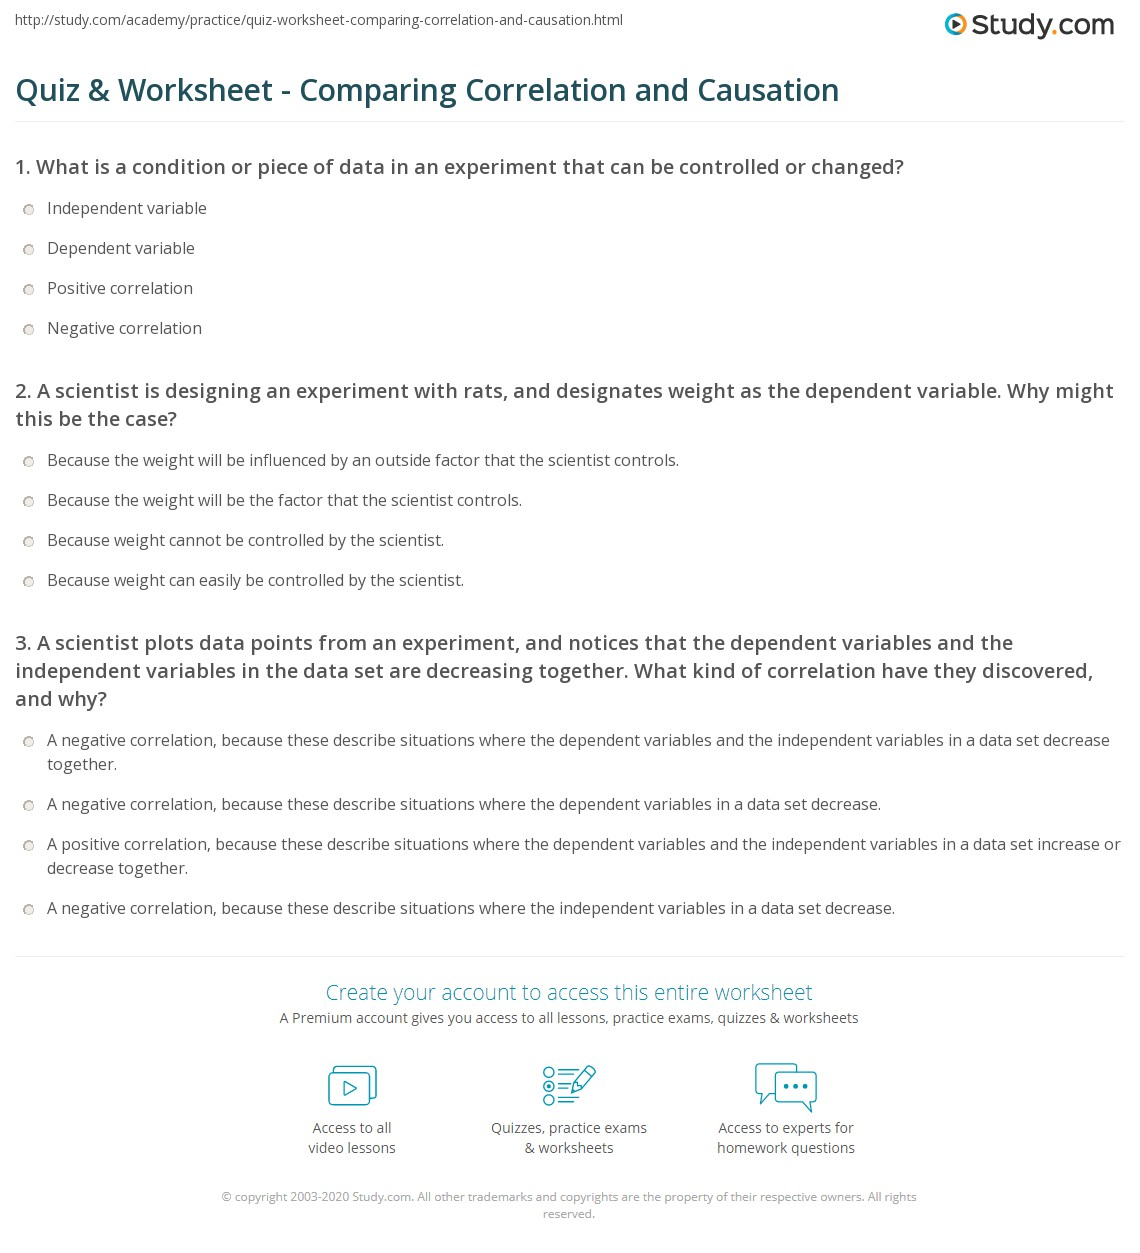 Aldiablosus  Sweet Quiz Amp Worksheet  Comparing Correlation And Causation  Studycom With Excellent Print Correlation Vs Causation Differences Amp Definition Worksheet With Enchanting Beginning Reading Worksheets Also Mathland Worksheet In Addition Vowel Digraphs Worksheets And More And Less Worksheets As Well As Debt Payoff Worksheet Additionally Teacher Worksheets Free From Studycom With Aldiablosus  Excellent Quiz Amp Worksheet  Comparing Correlation And Causation  Studycom With Enchanting Print Correlation Vs Causation Differences Amp Definition Worksheet And Sweet Beginning Reading Worksheets Also Mathland Worksheet In Addition Vowel Digraphs Worksheets From Studycom